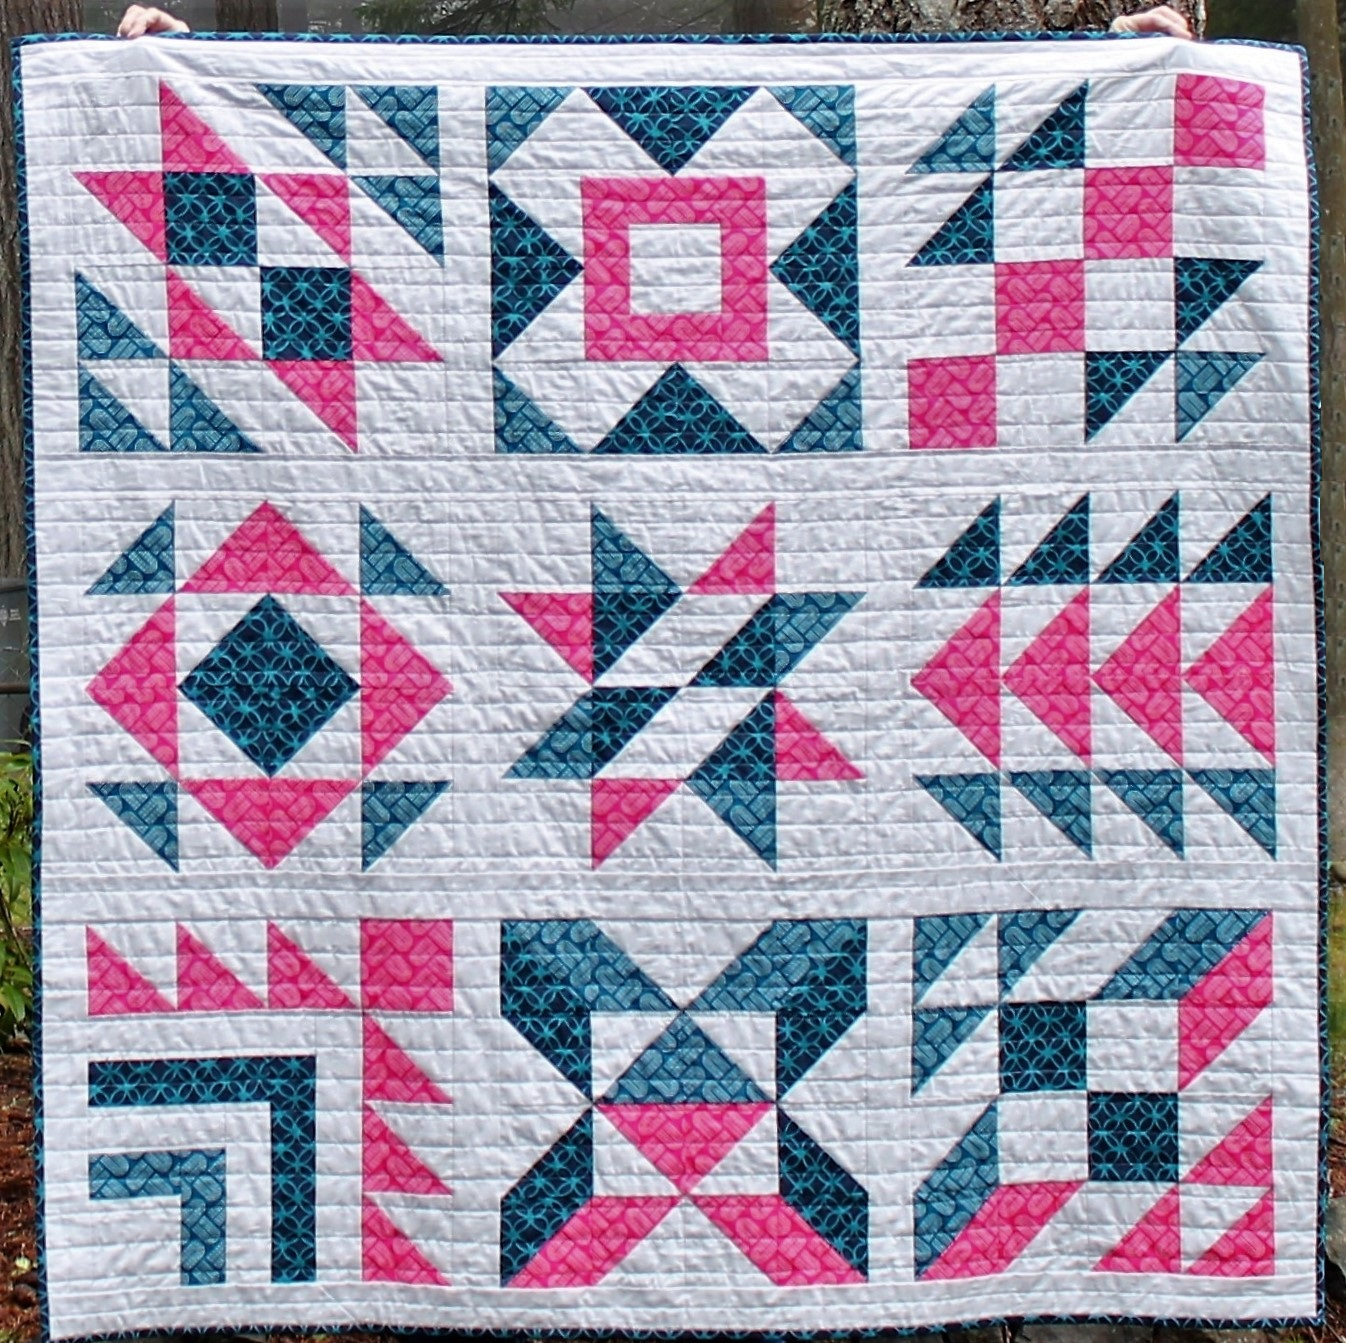 Welcome to the NQC Quilt Block Challenge! | National Quilters Circle